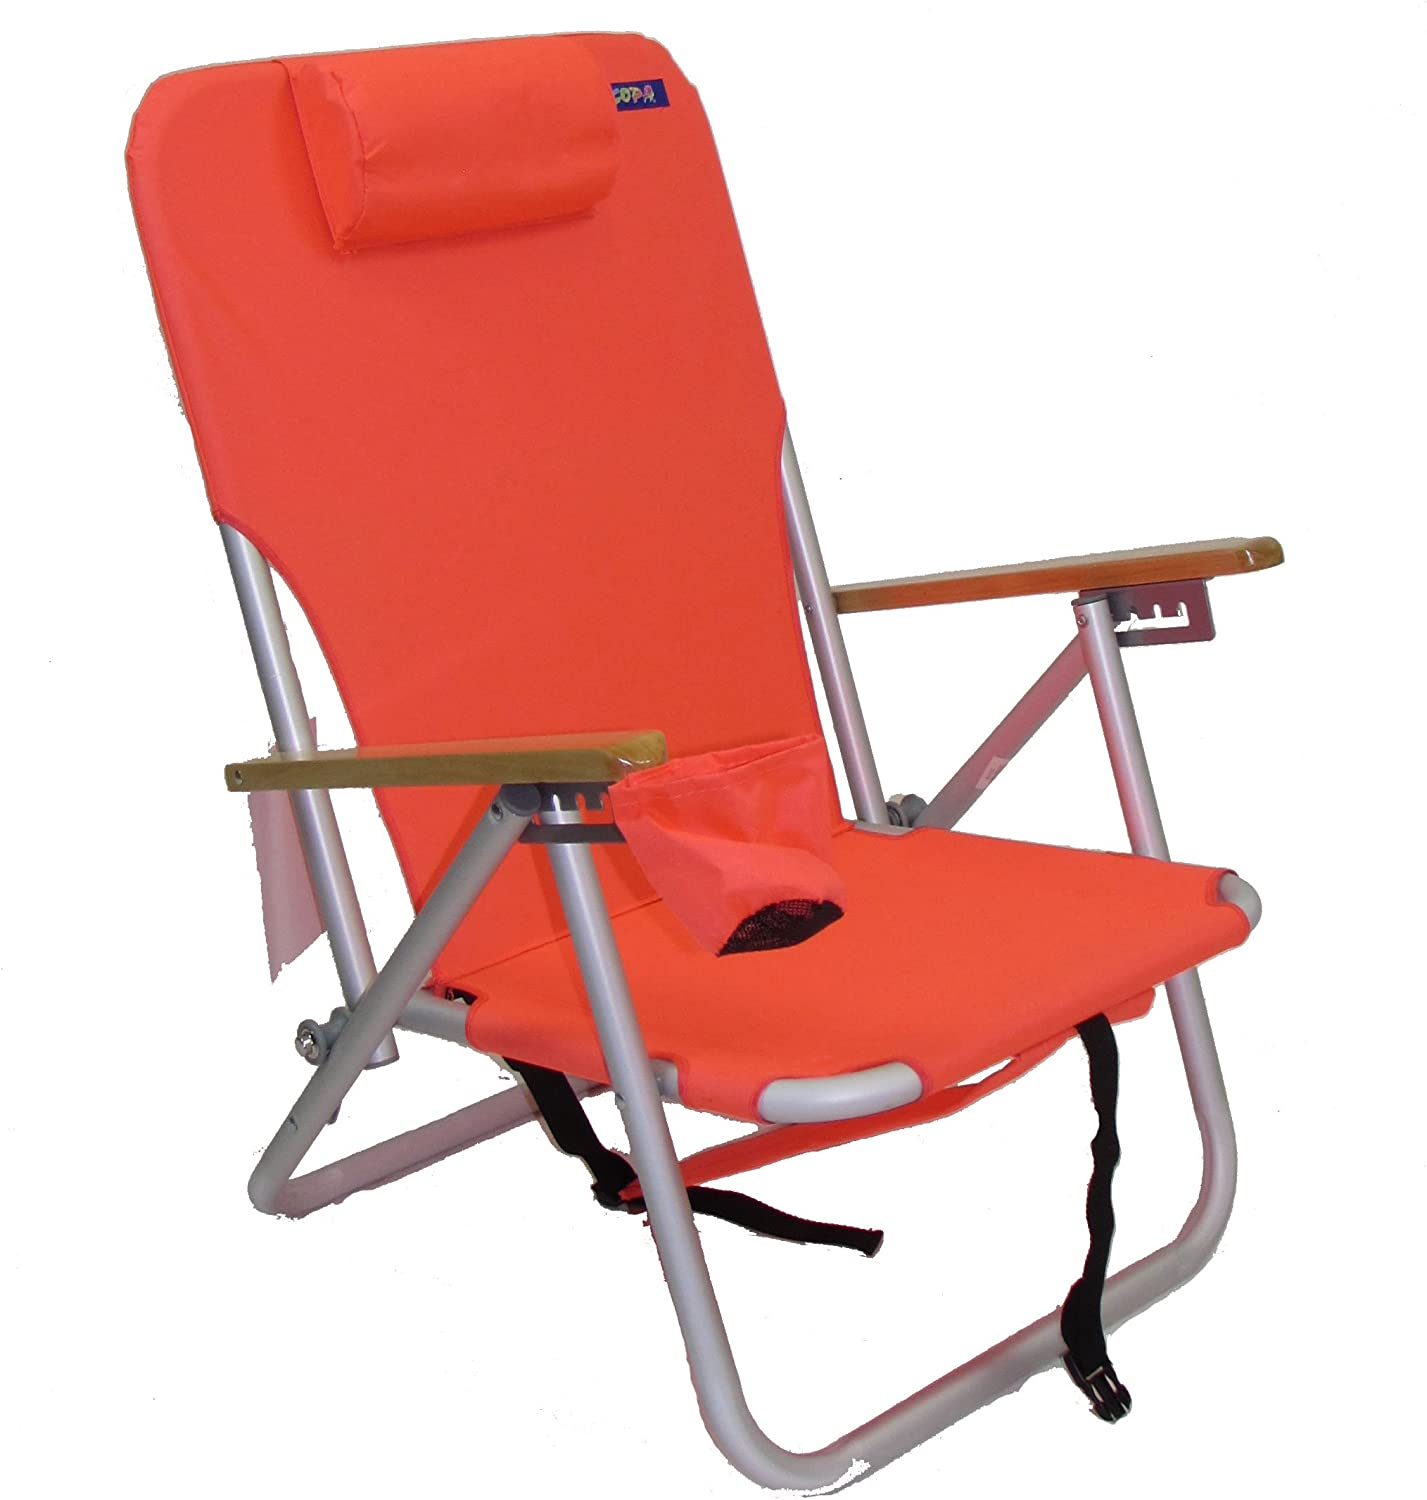 COPA 4 Position Aluminum Folding Backpack Chair Coral